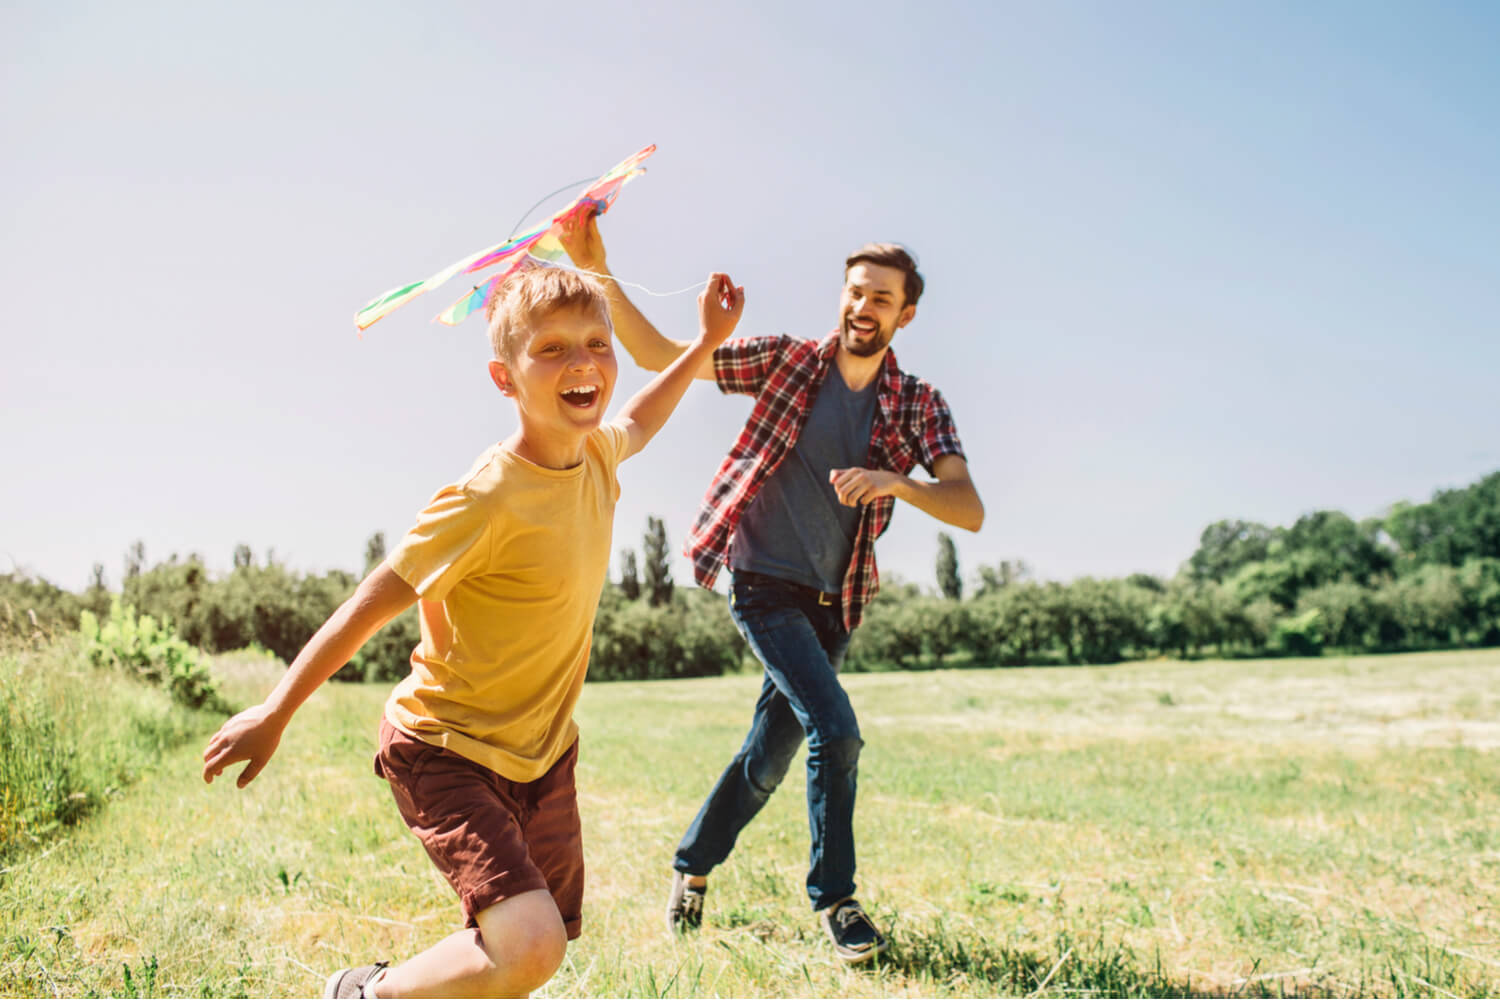 A father and son galivanting with kites through a field during their spring break in Wisconsin Dells.